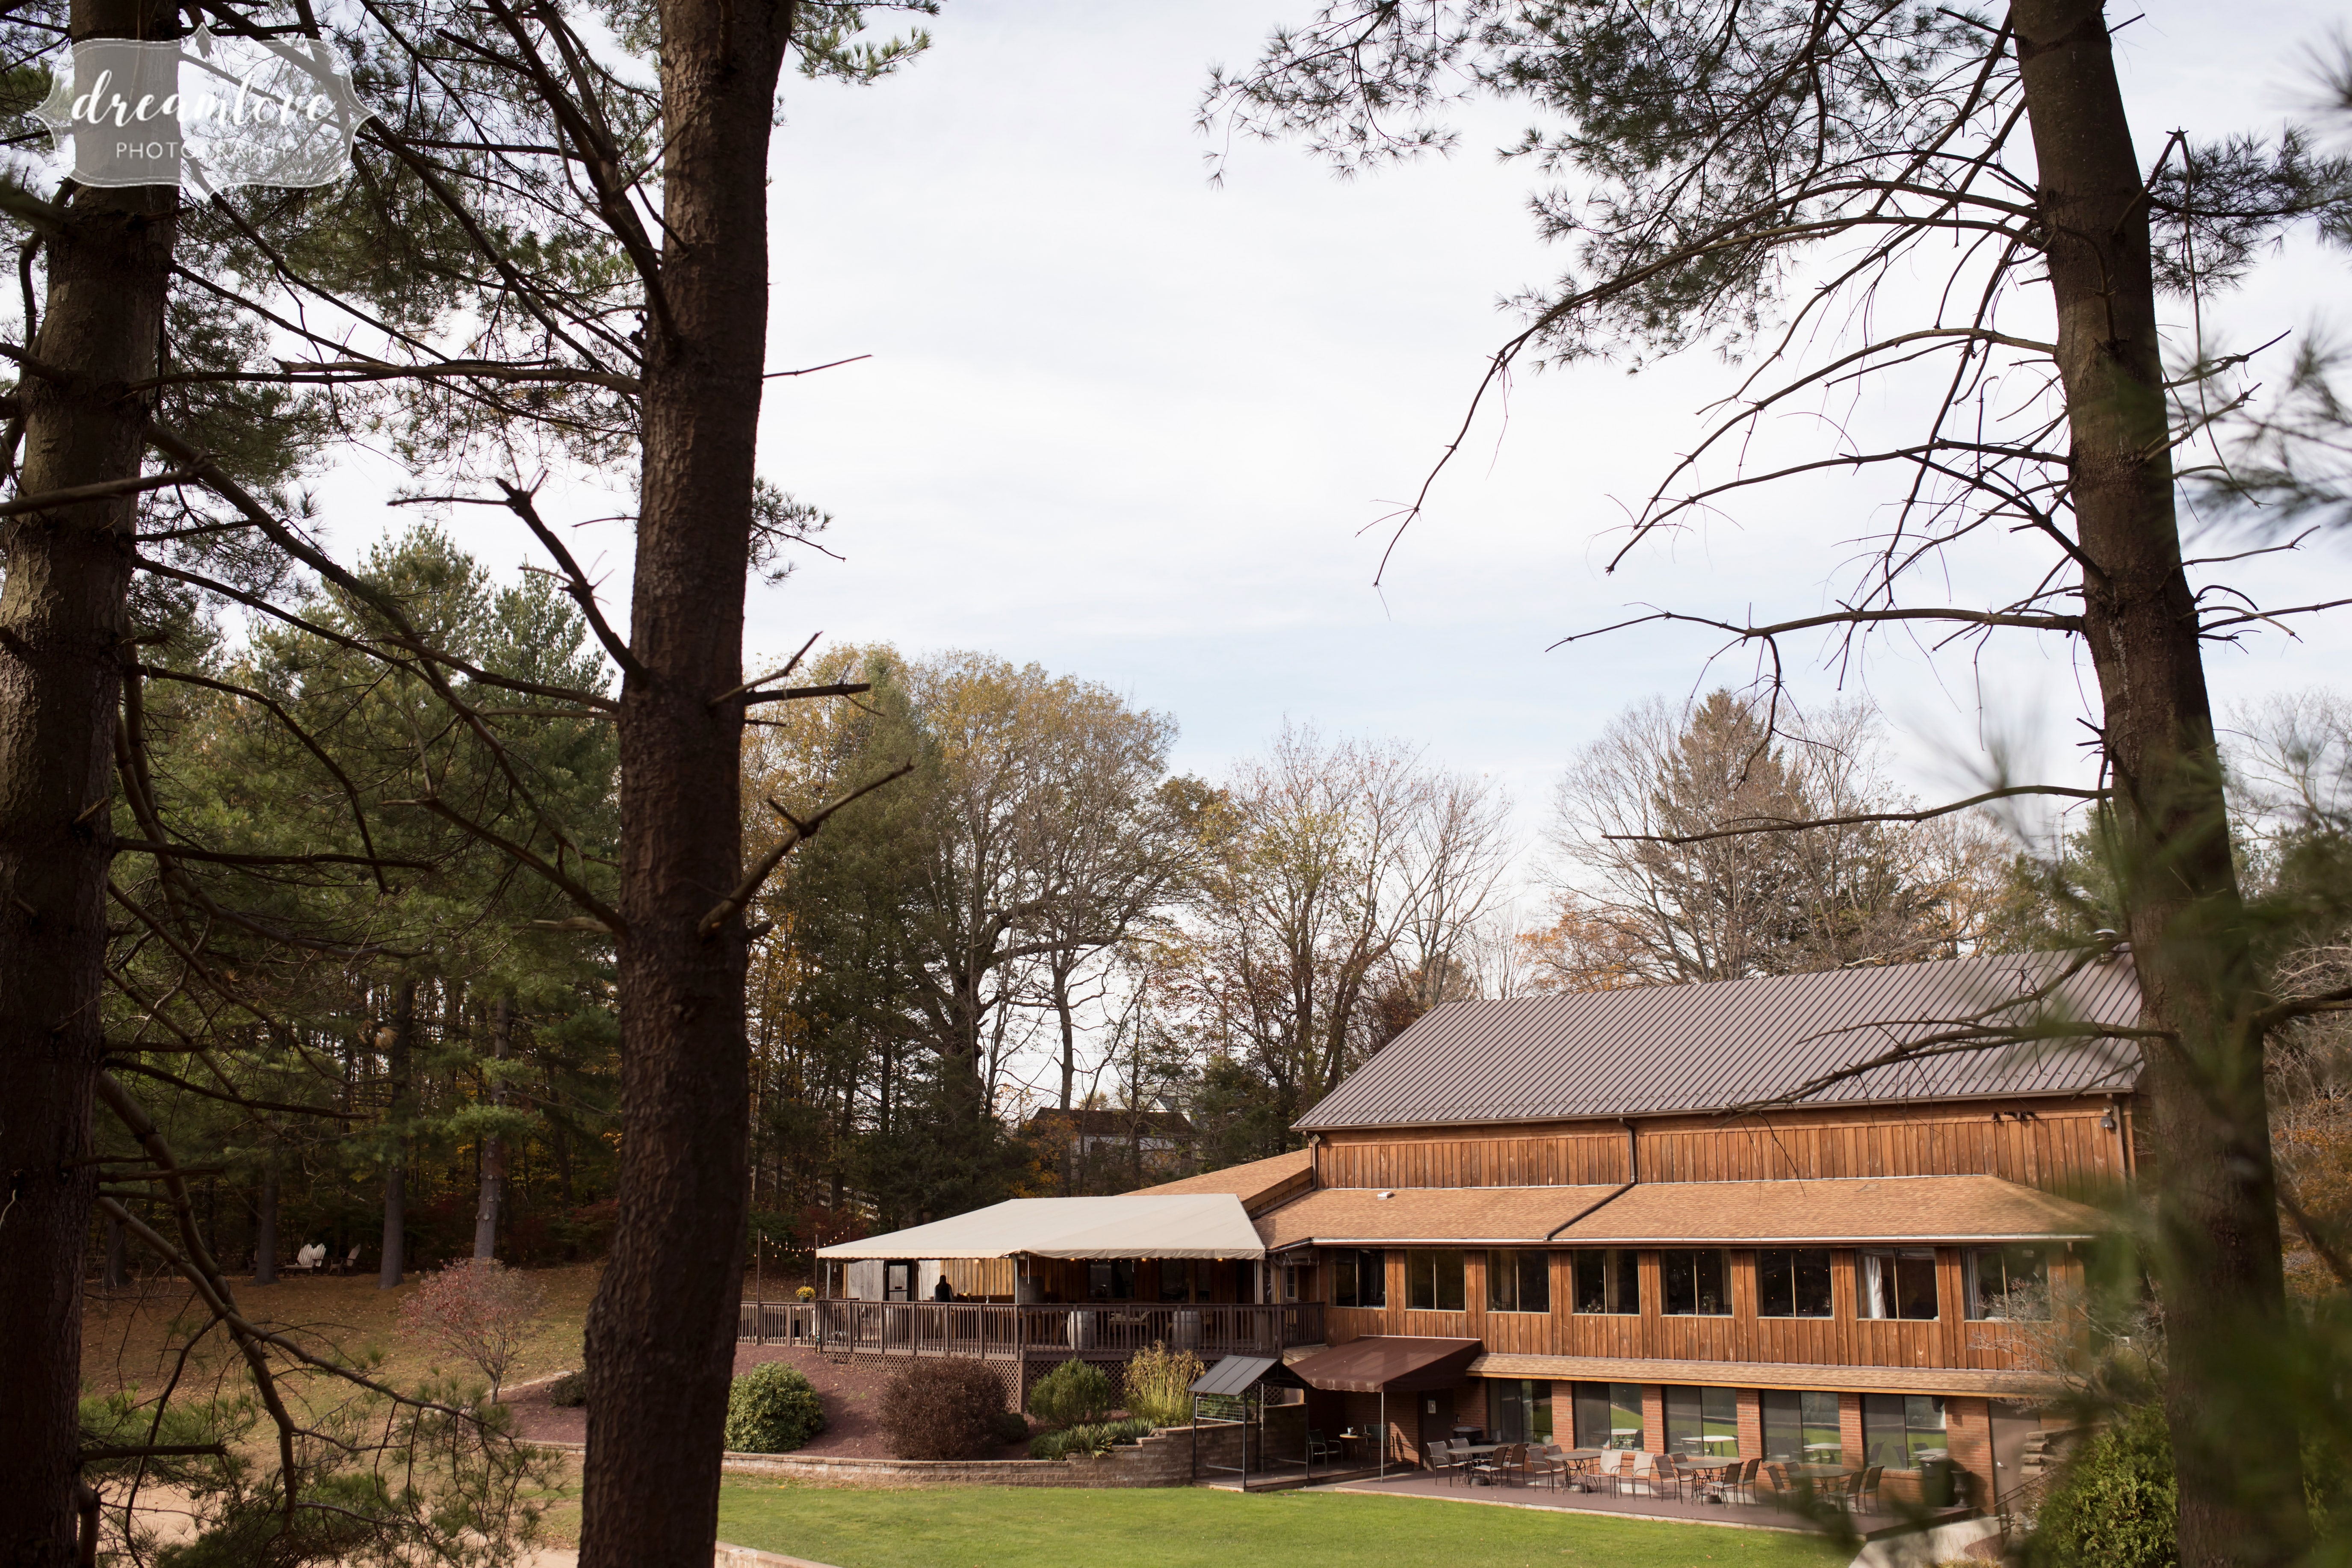 This rustic covered pavilion wedding reception venue has a lake, fall foliage, an outdoor ceremony space and is in the woods in CT!